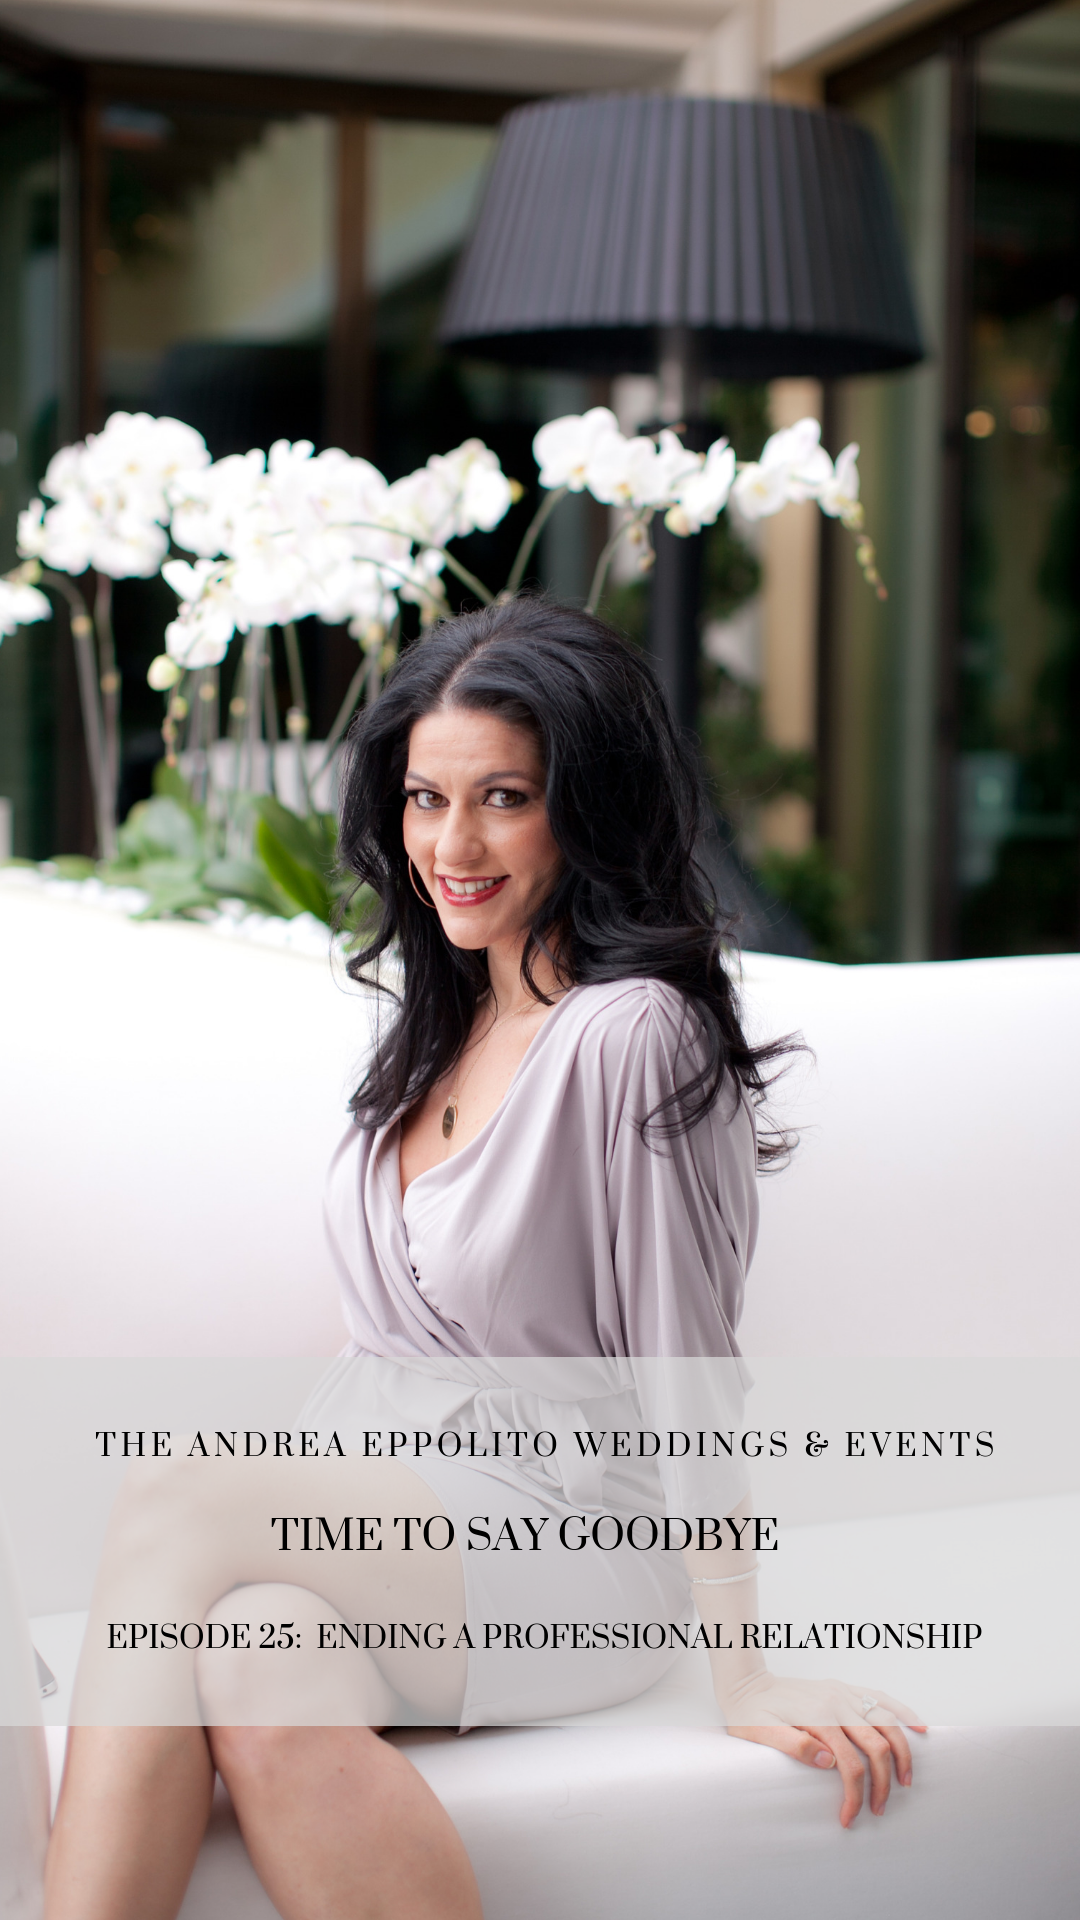 Wedding Podcast:  Las Vegas Wedding Planner Andrea Eppolito discusses the end of a professional relationship.